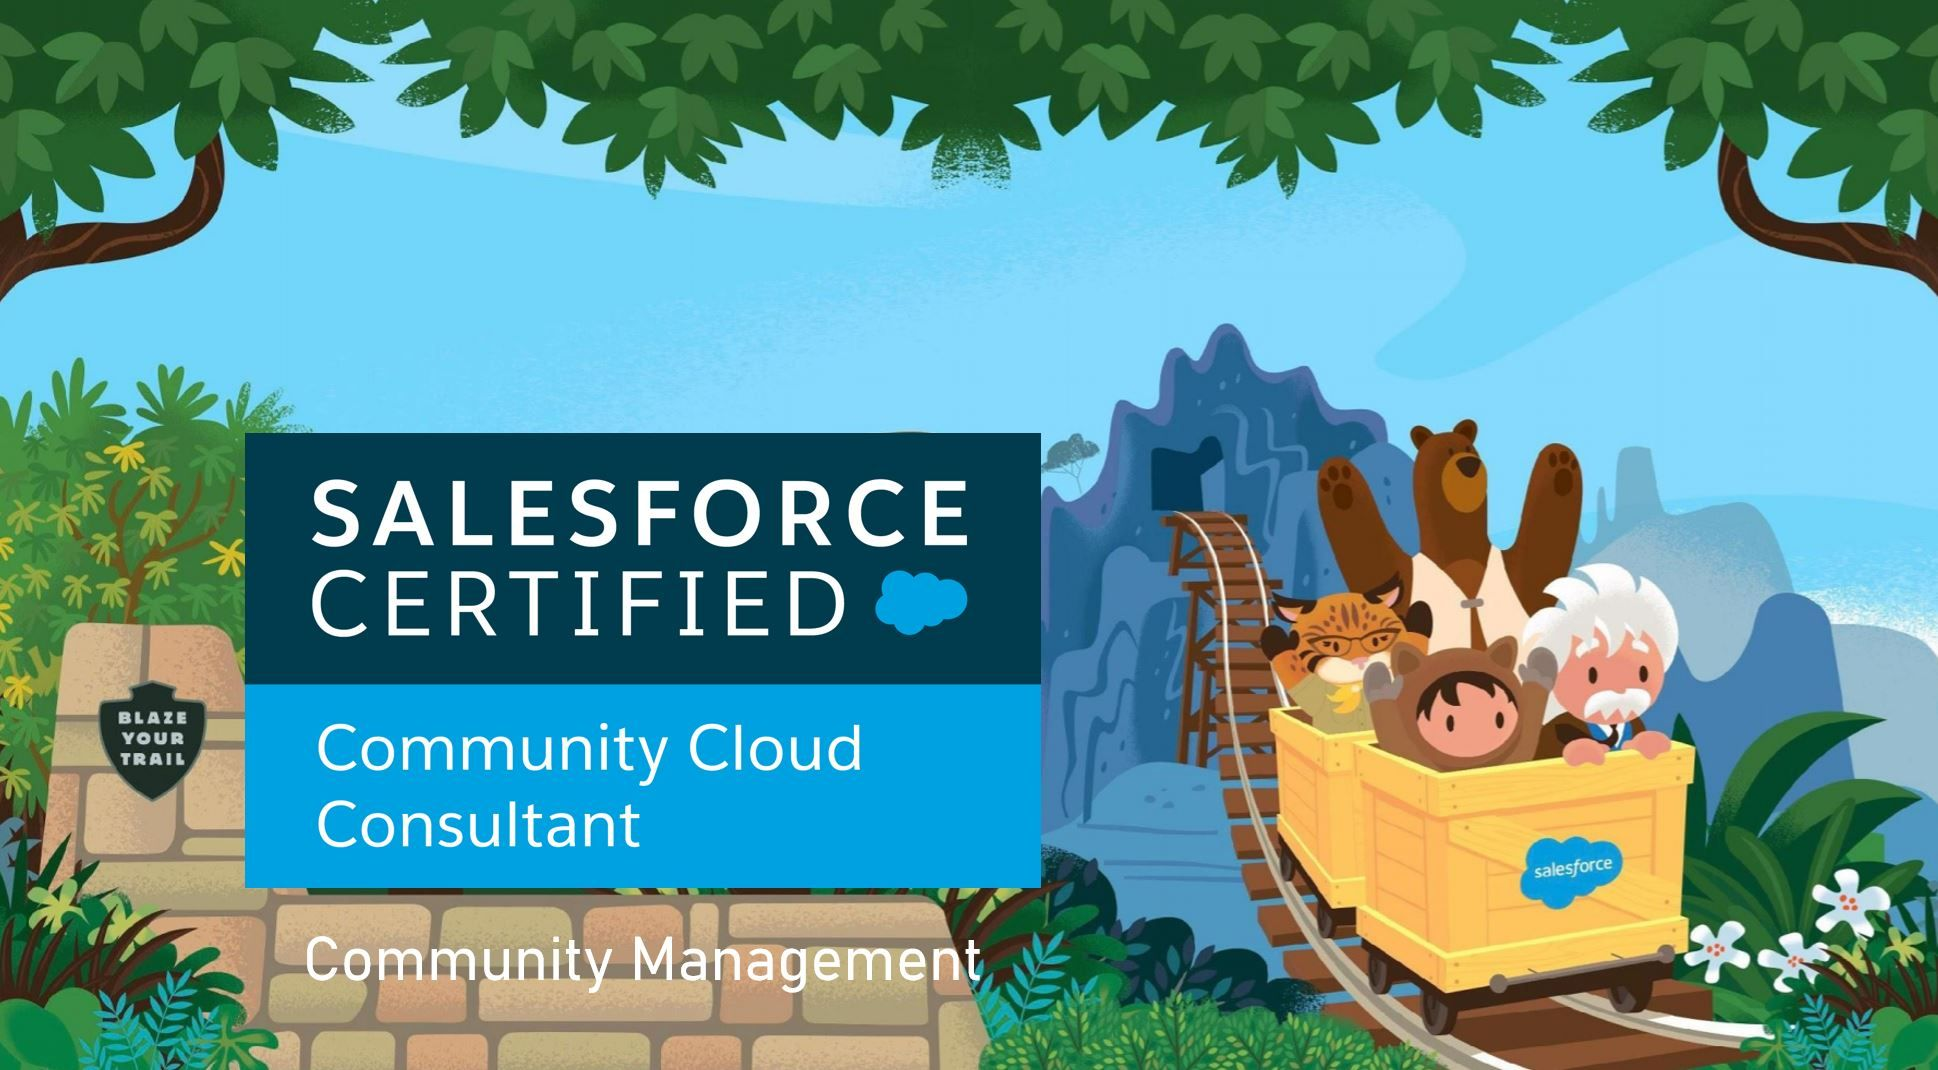 Salesforce Community Cloud Consultant Exam Preparation: Community Management